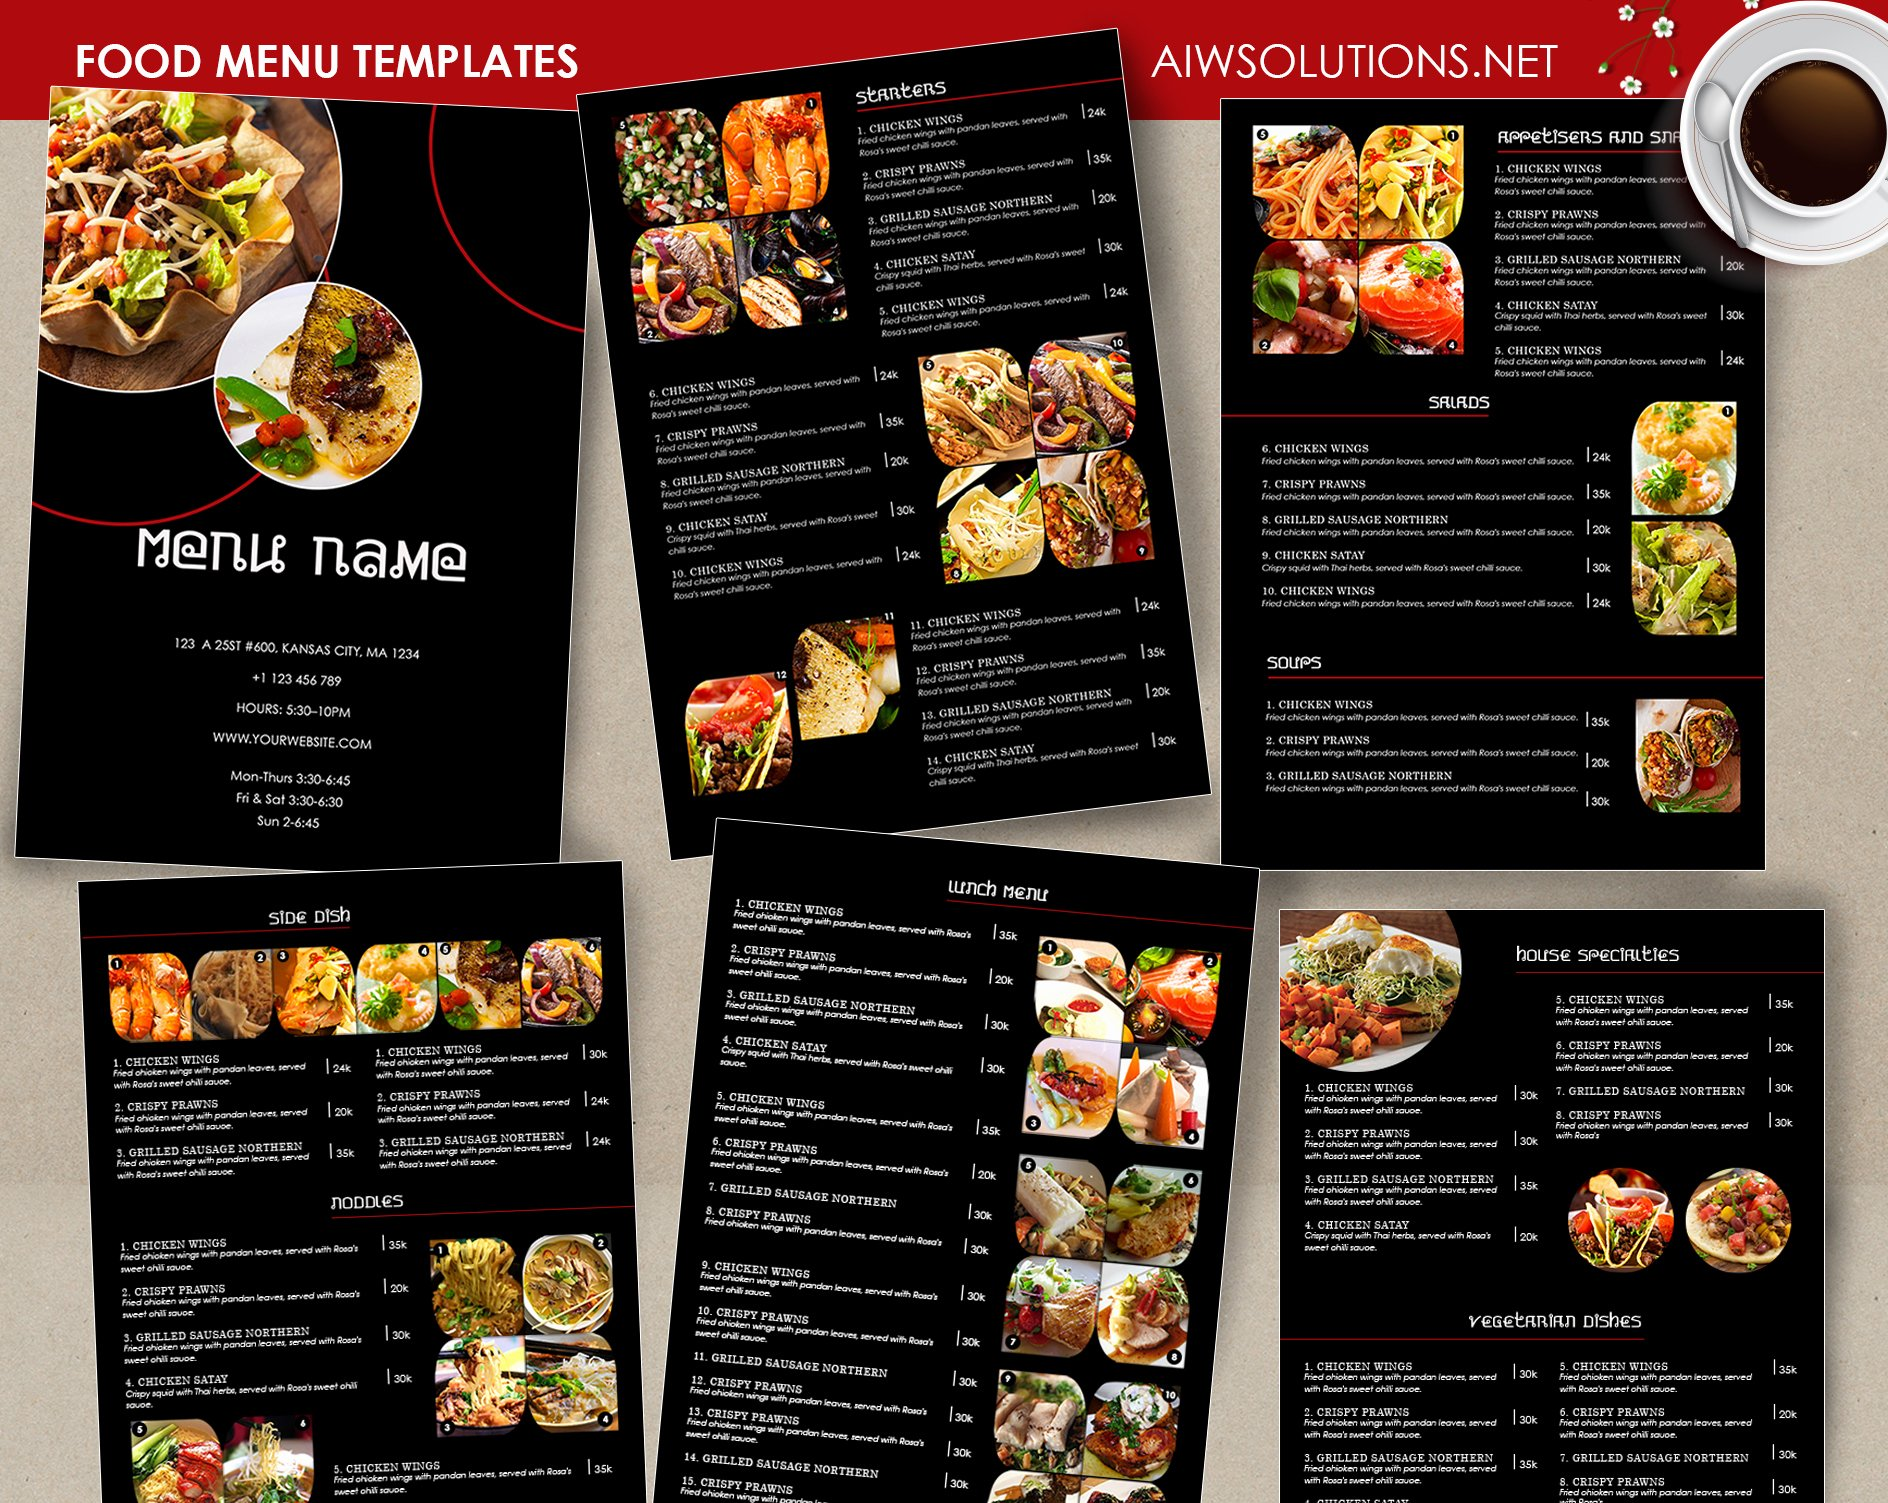 Free Bar Menu Templates Luxury Design & Templates Menu Templates Wedding Menu Food